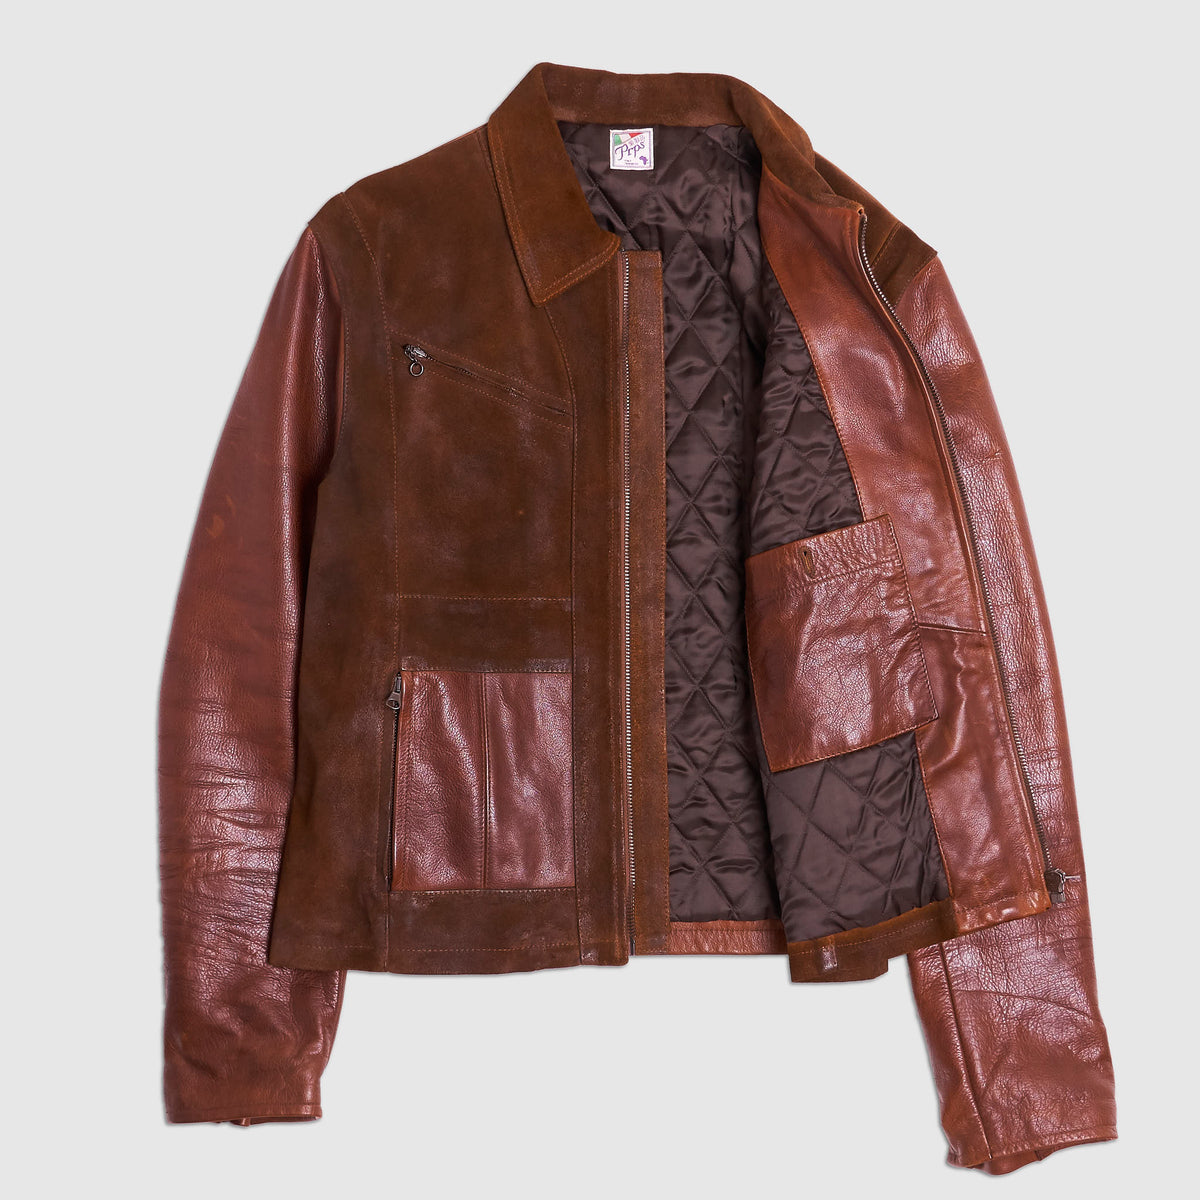 Prps Leather Jacket Double Leather